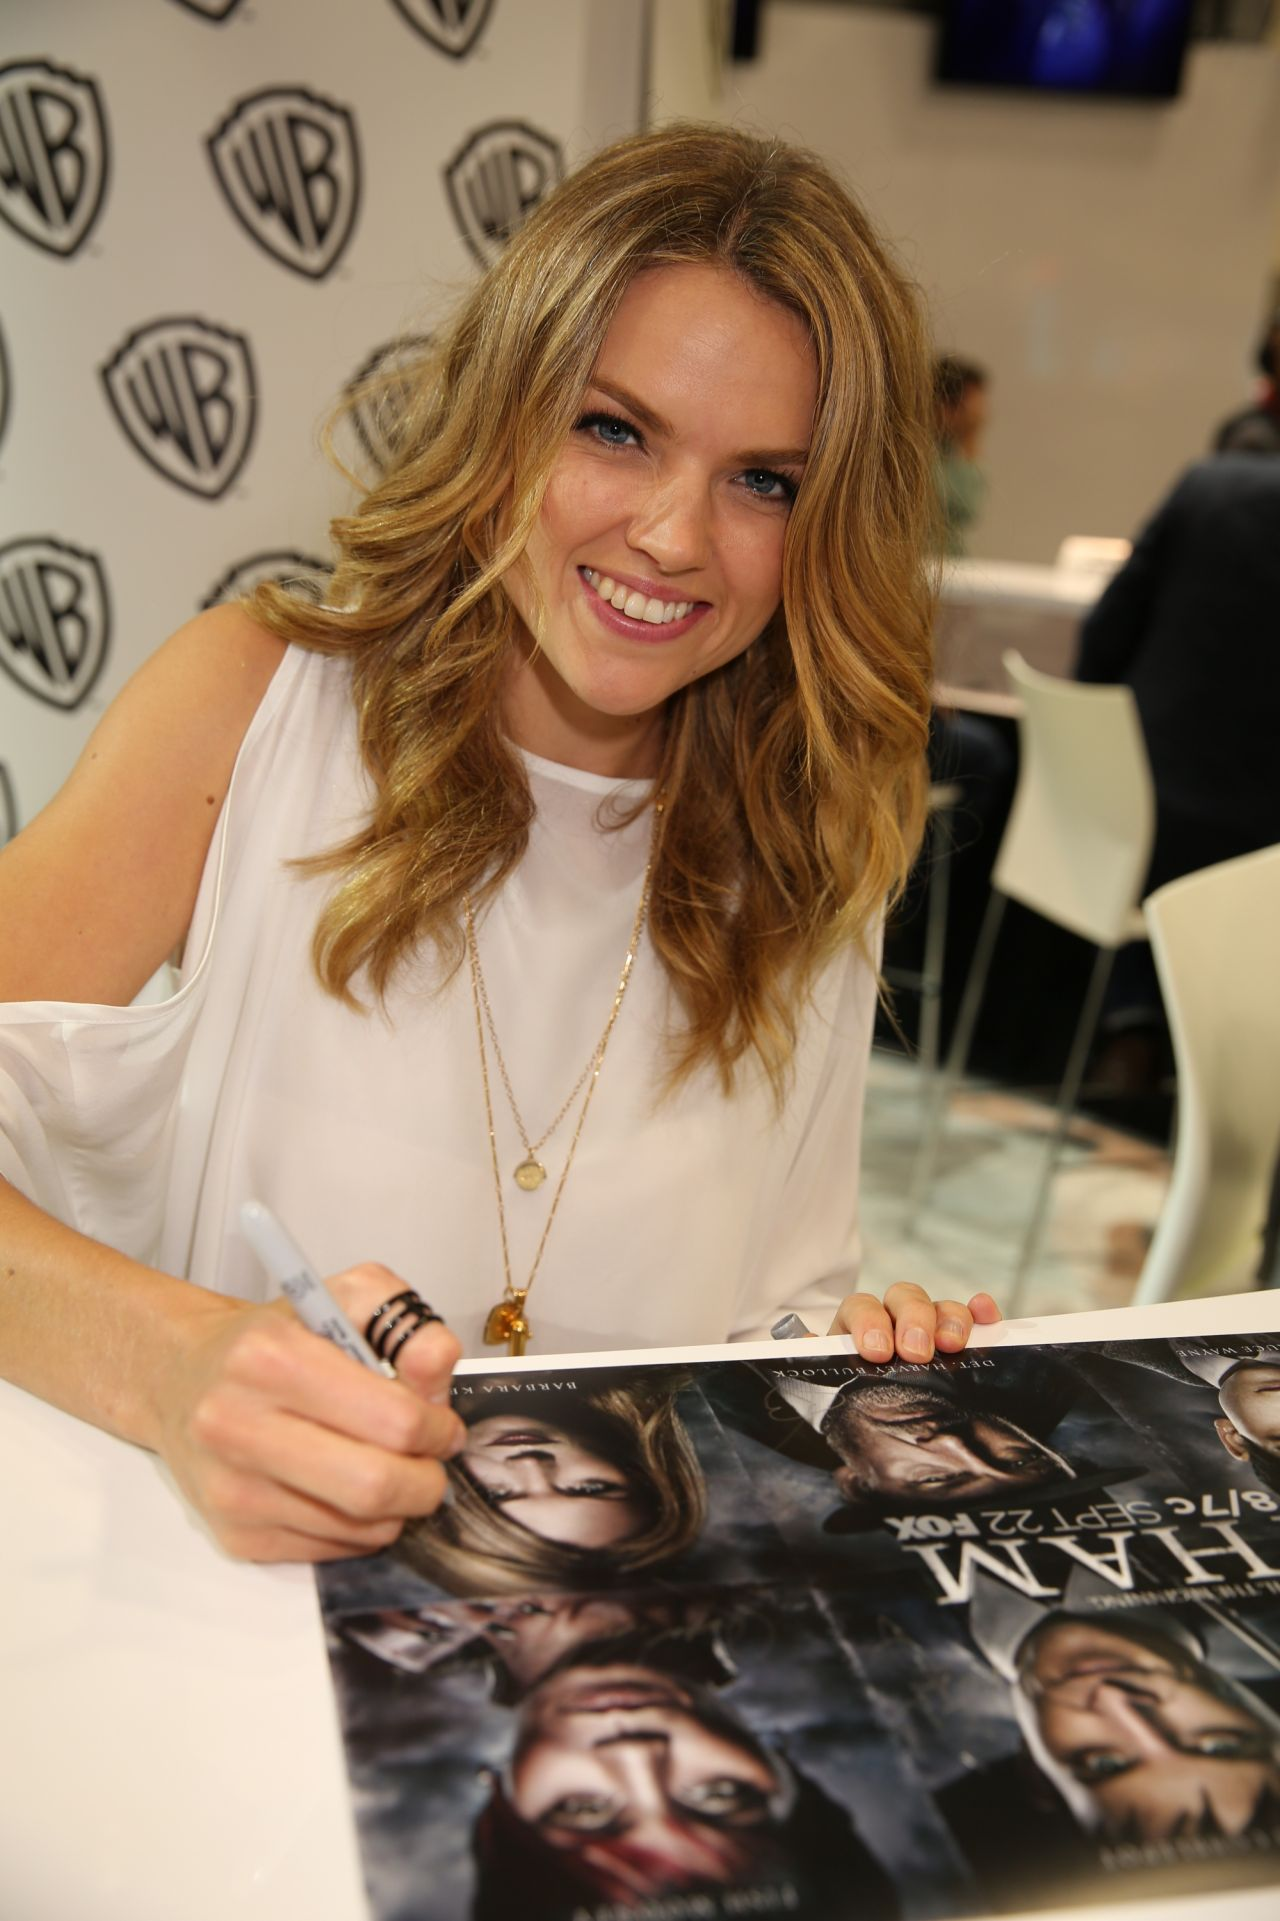 Erin Richards - Warner Bros. at SDCC 2014